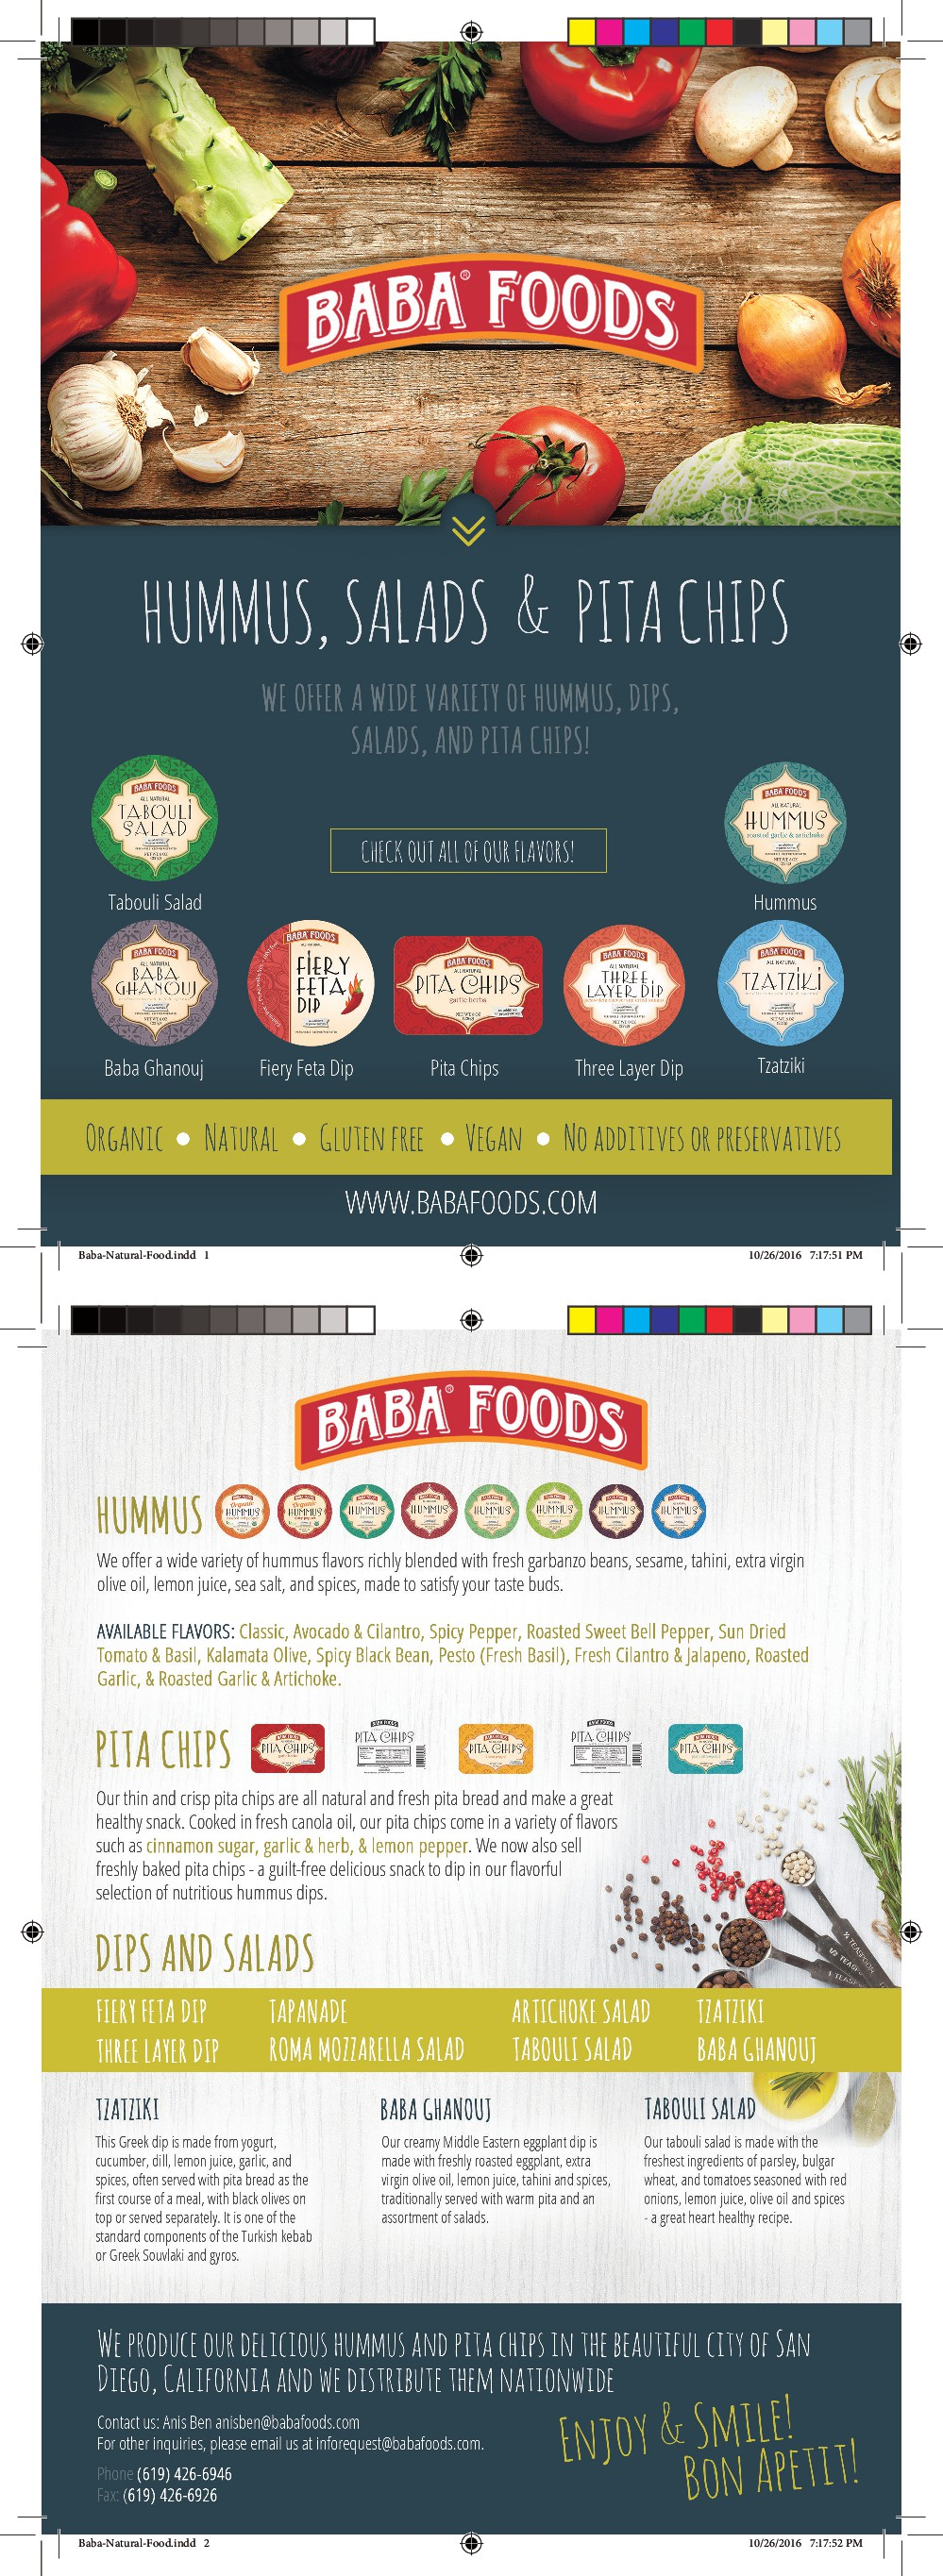 design a creative yet unique flyer that will be the hype for Baba foods